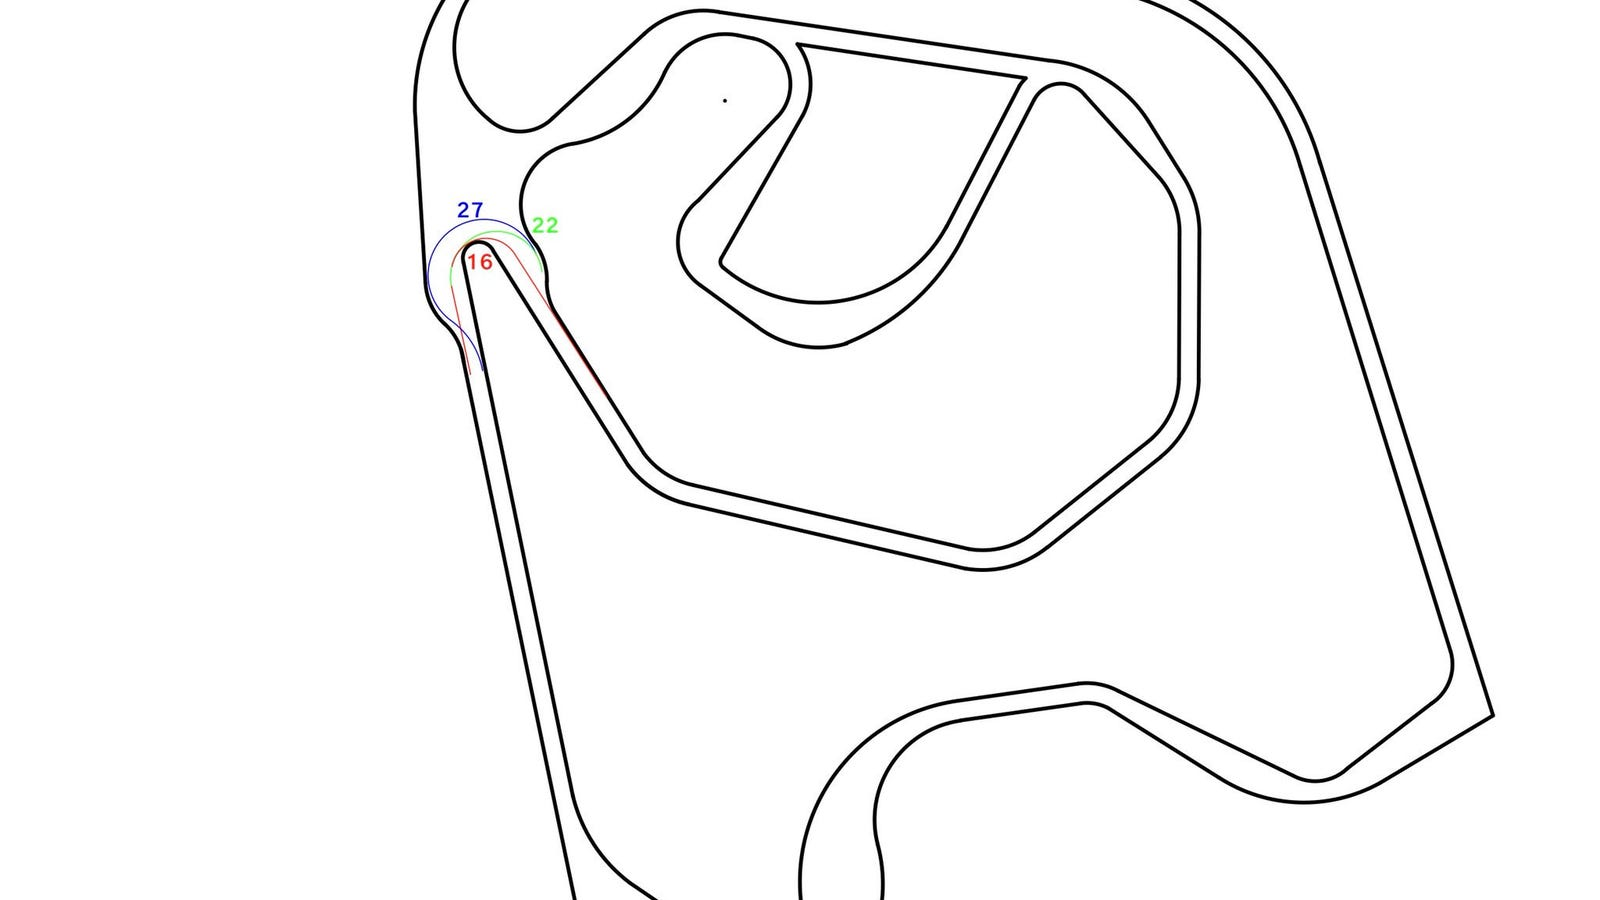 variable geometry in race tracks